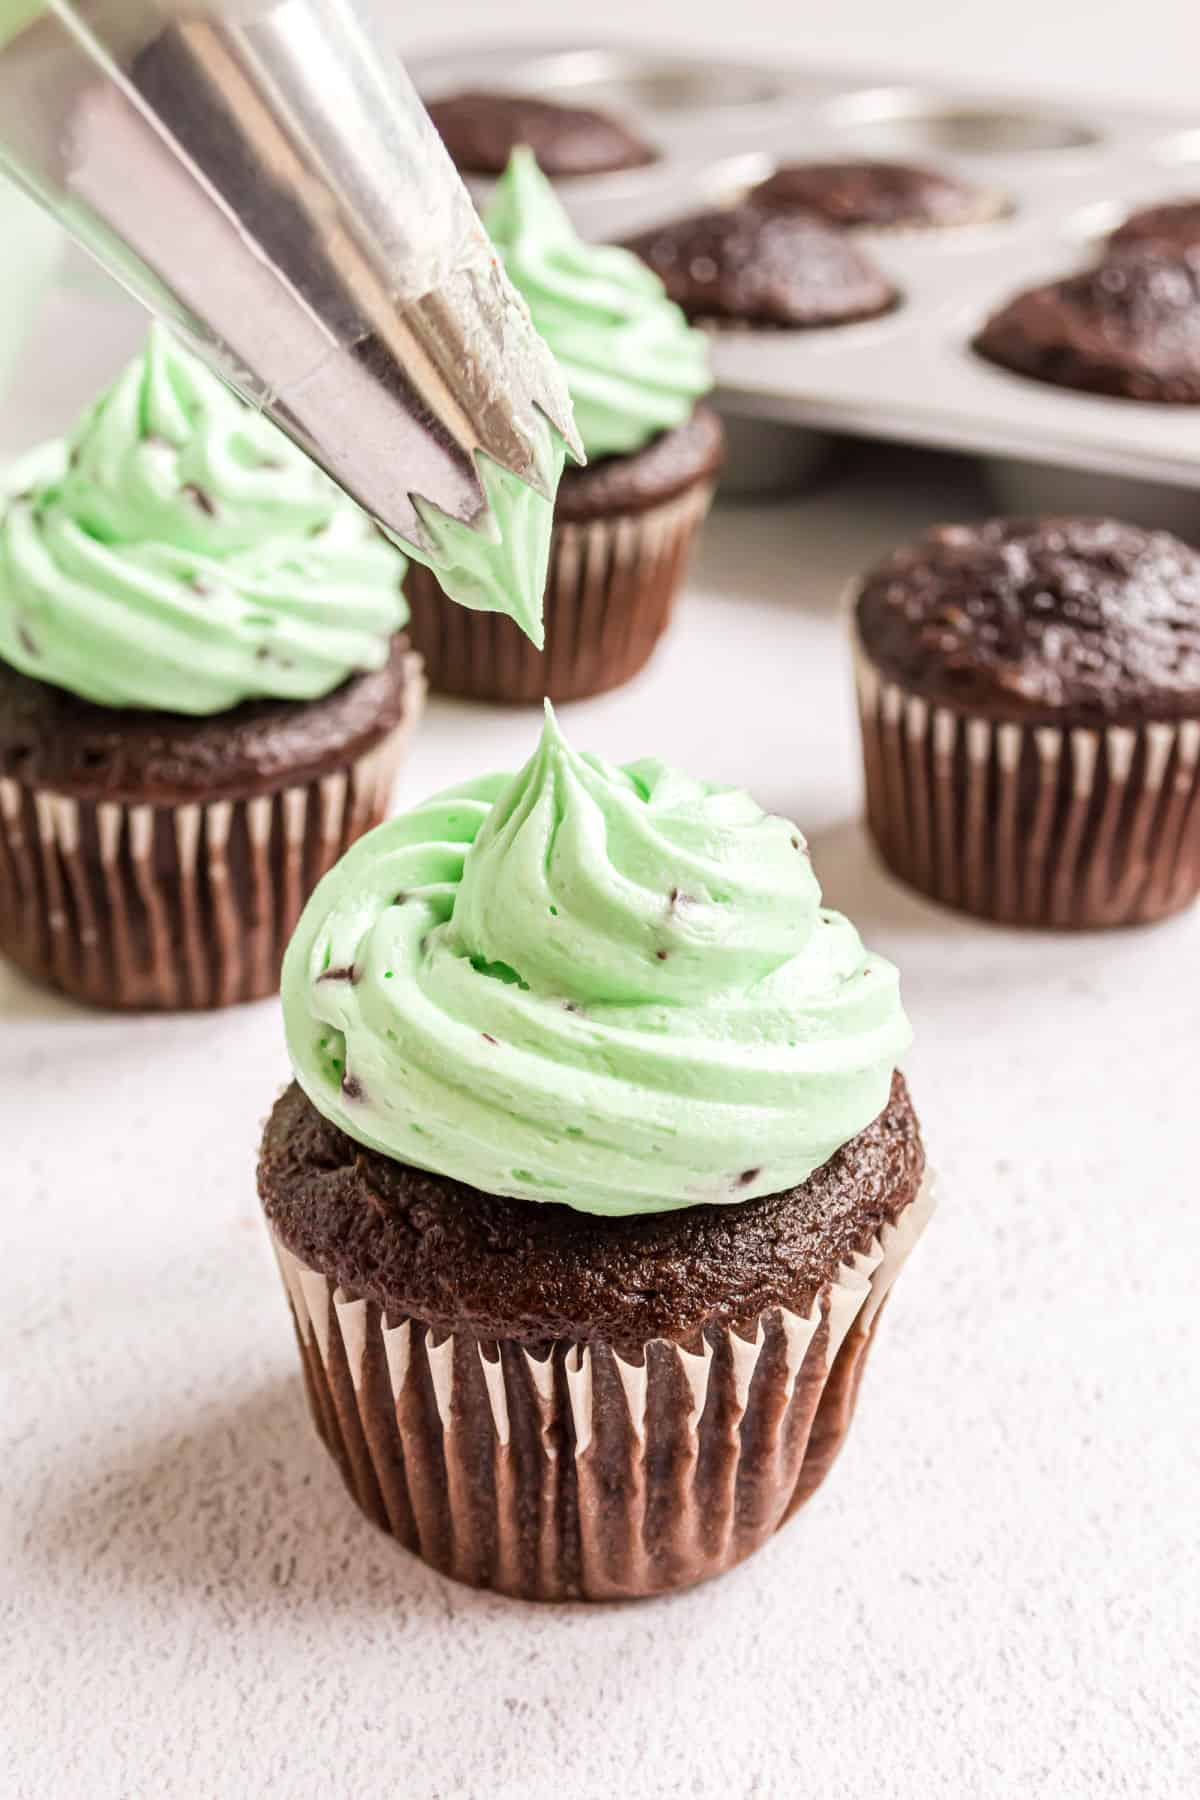 Mint chocolate chip frosting being piped onto a chocolate cupcake.